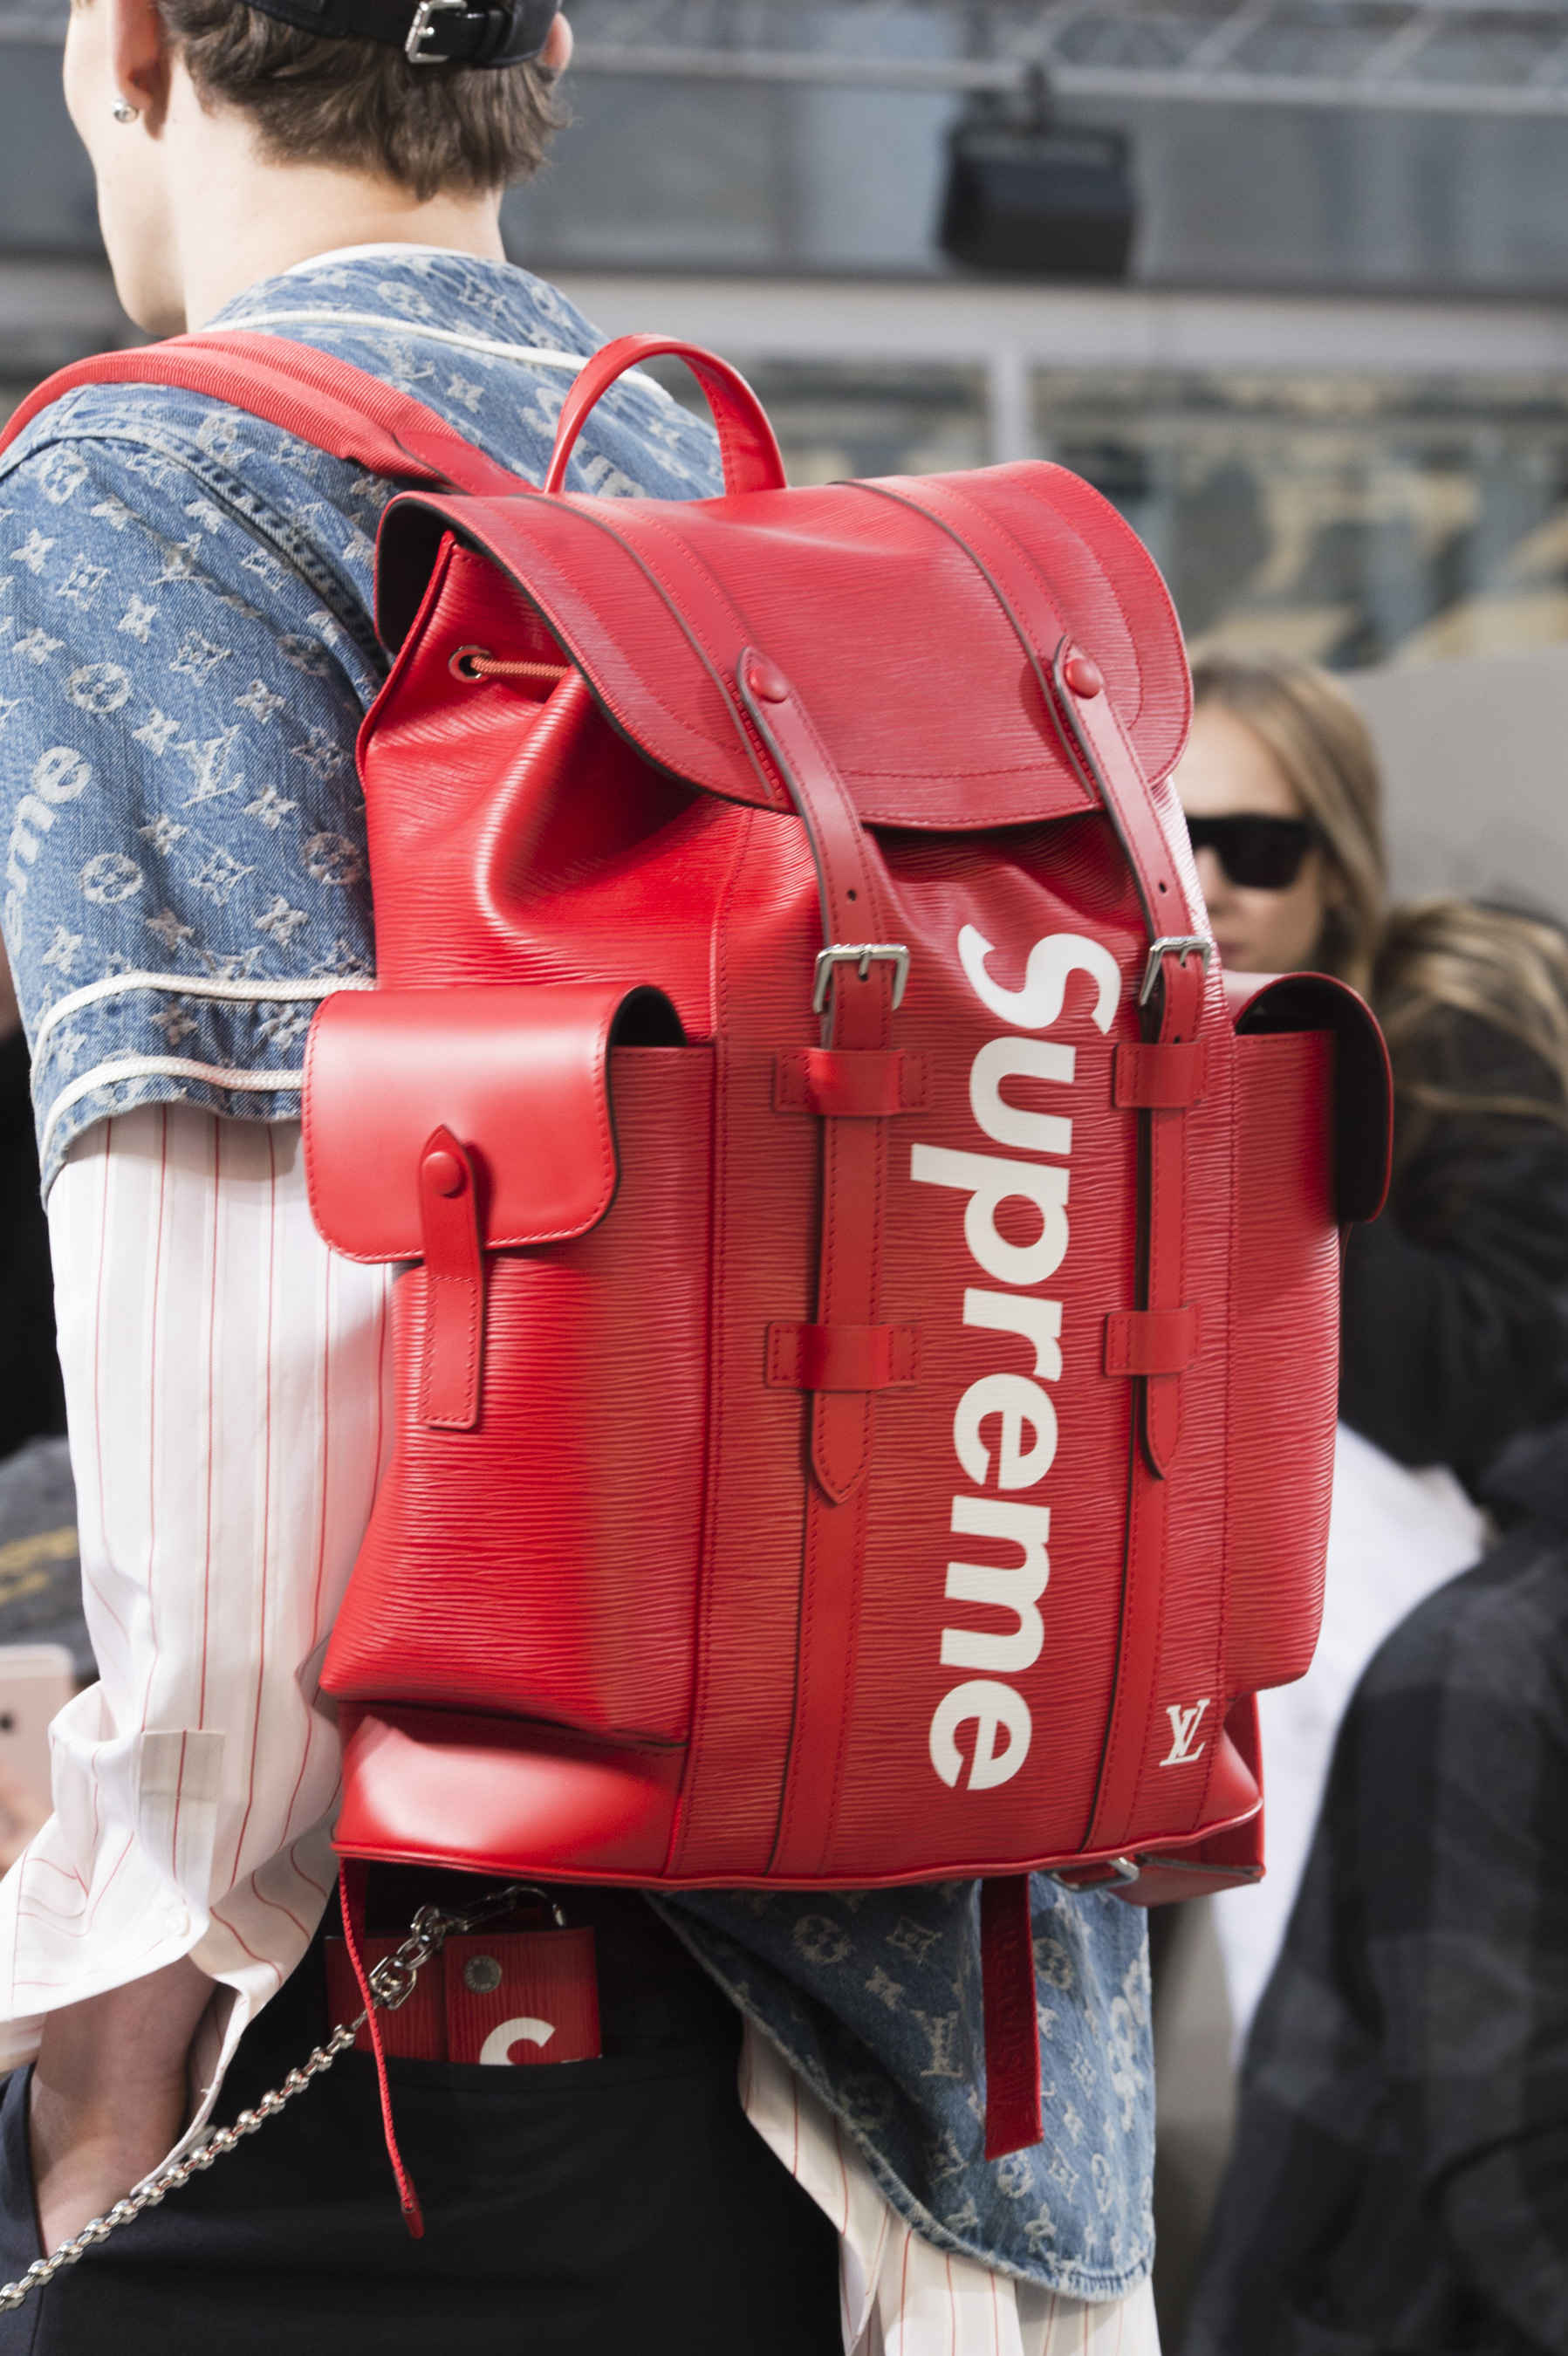 9ef31afe7f753 Louis Vuitton x Supreme collaboration  an enduring success or ...